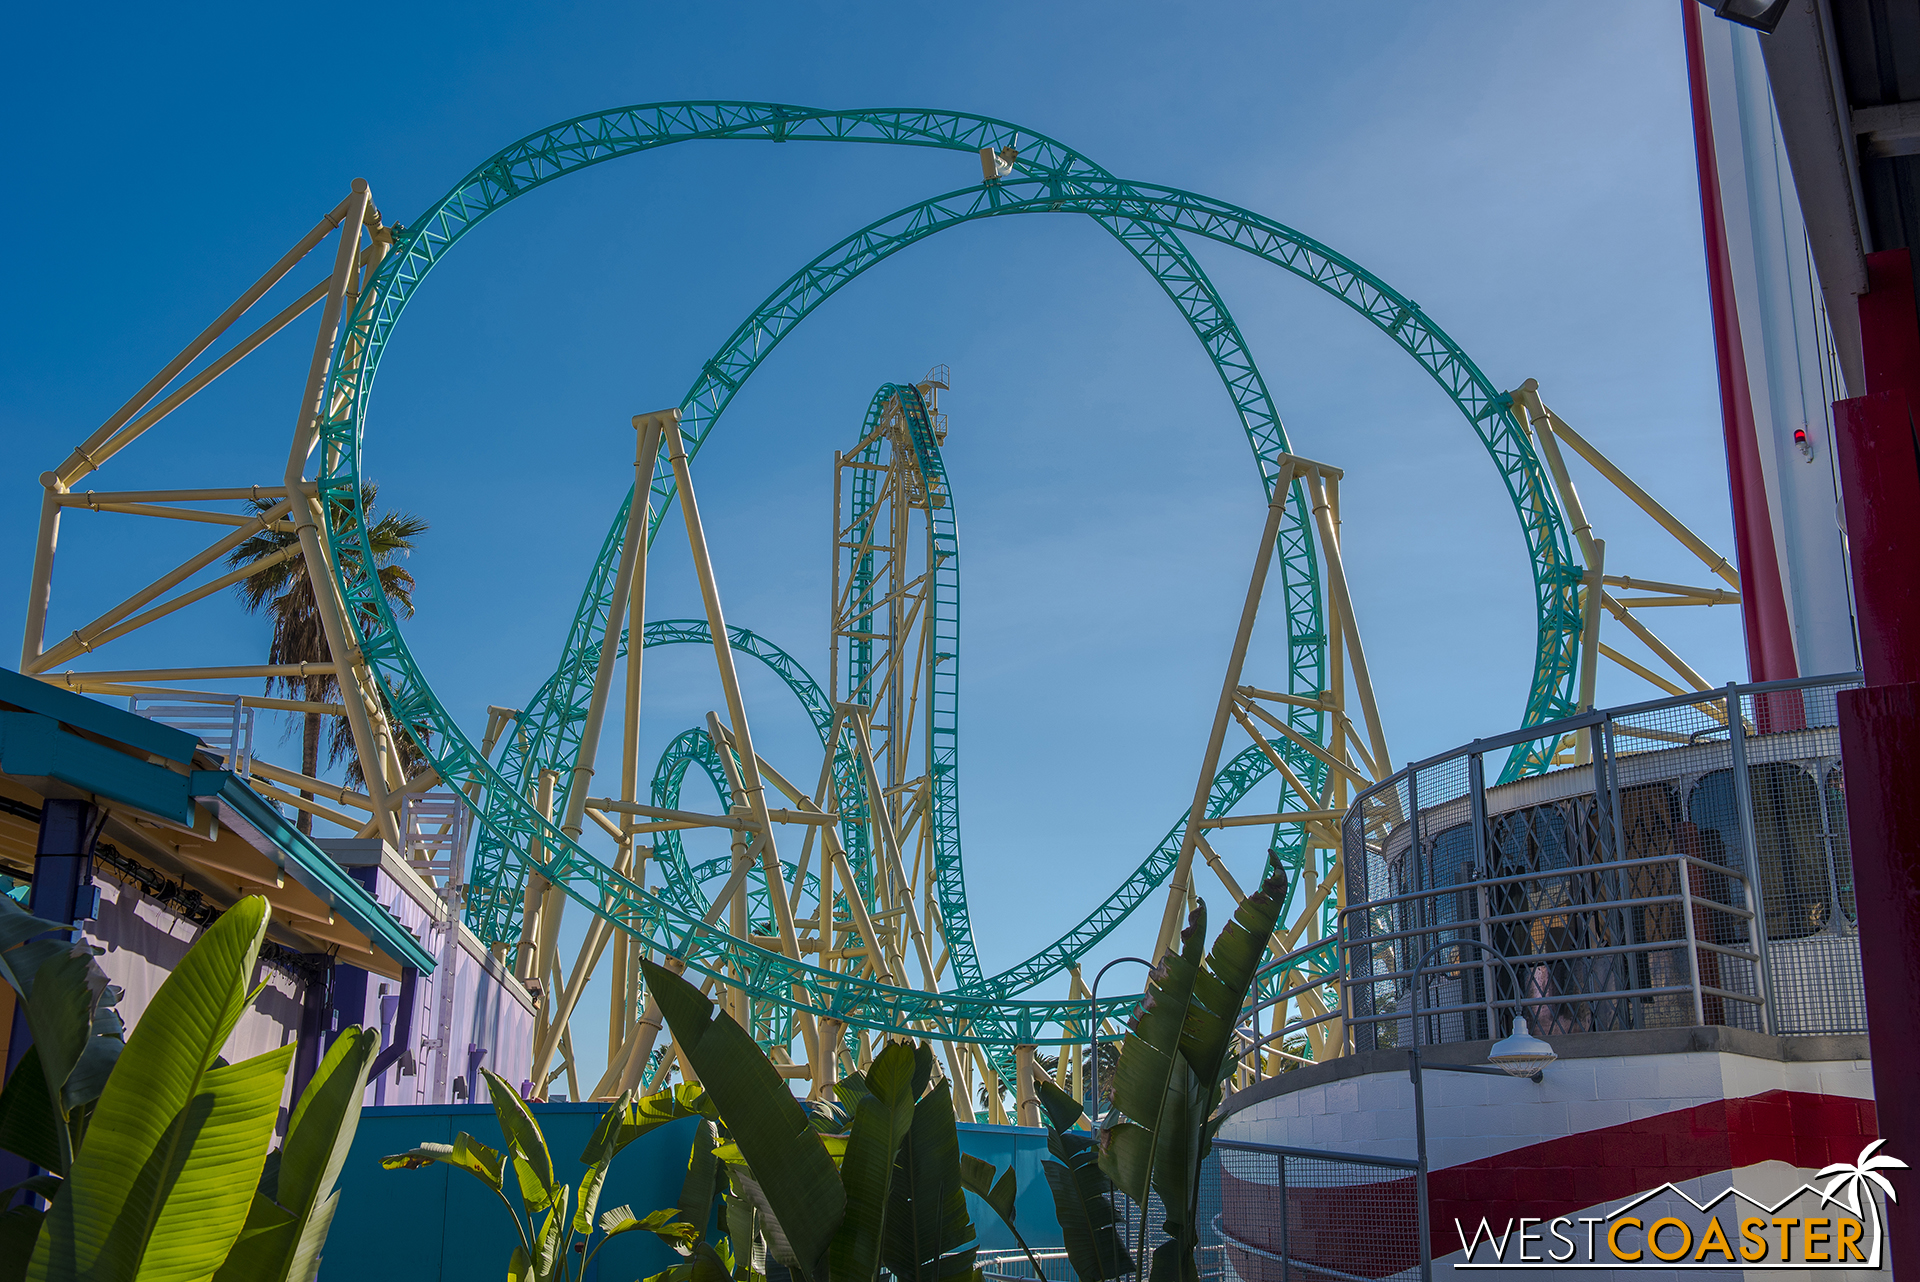 The ride is photogenic from different angles.